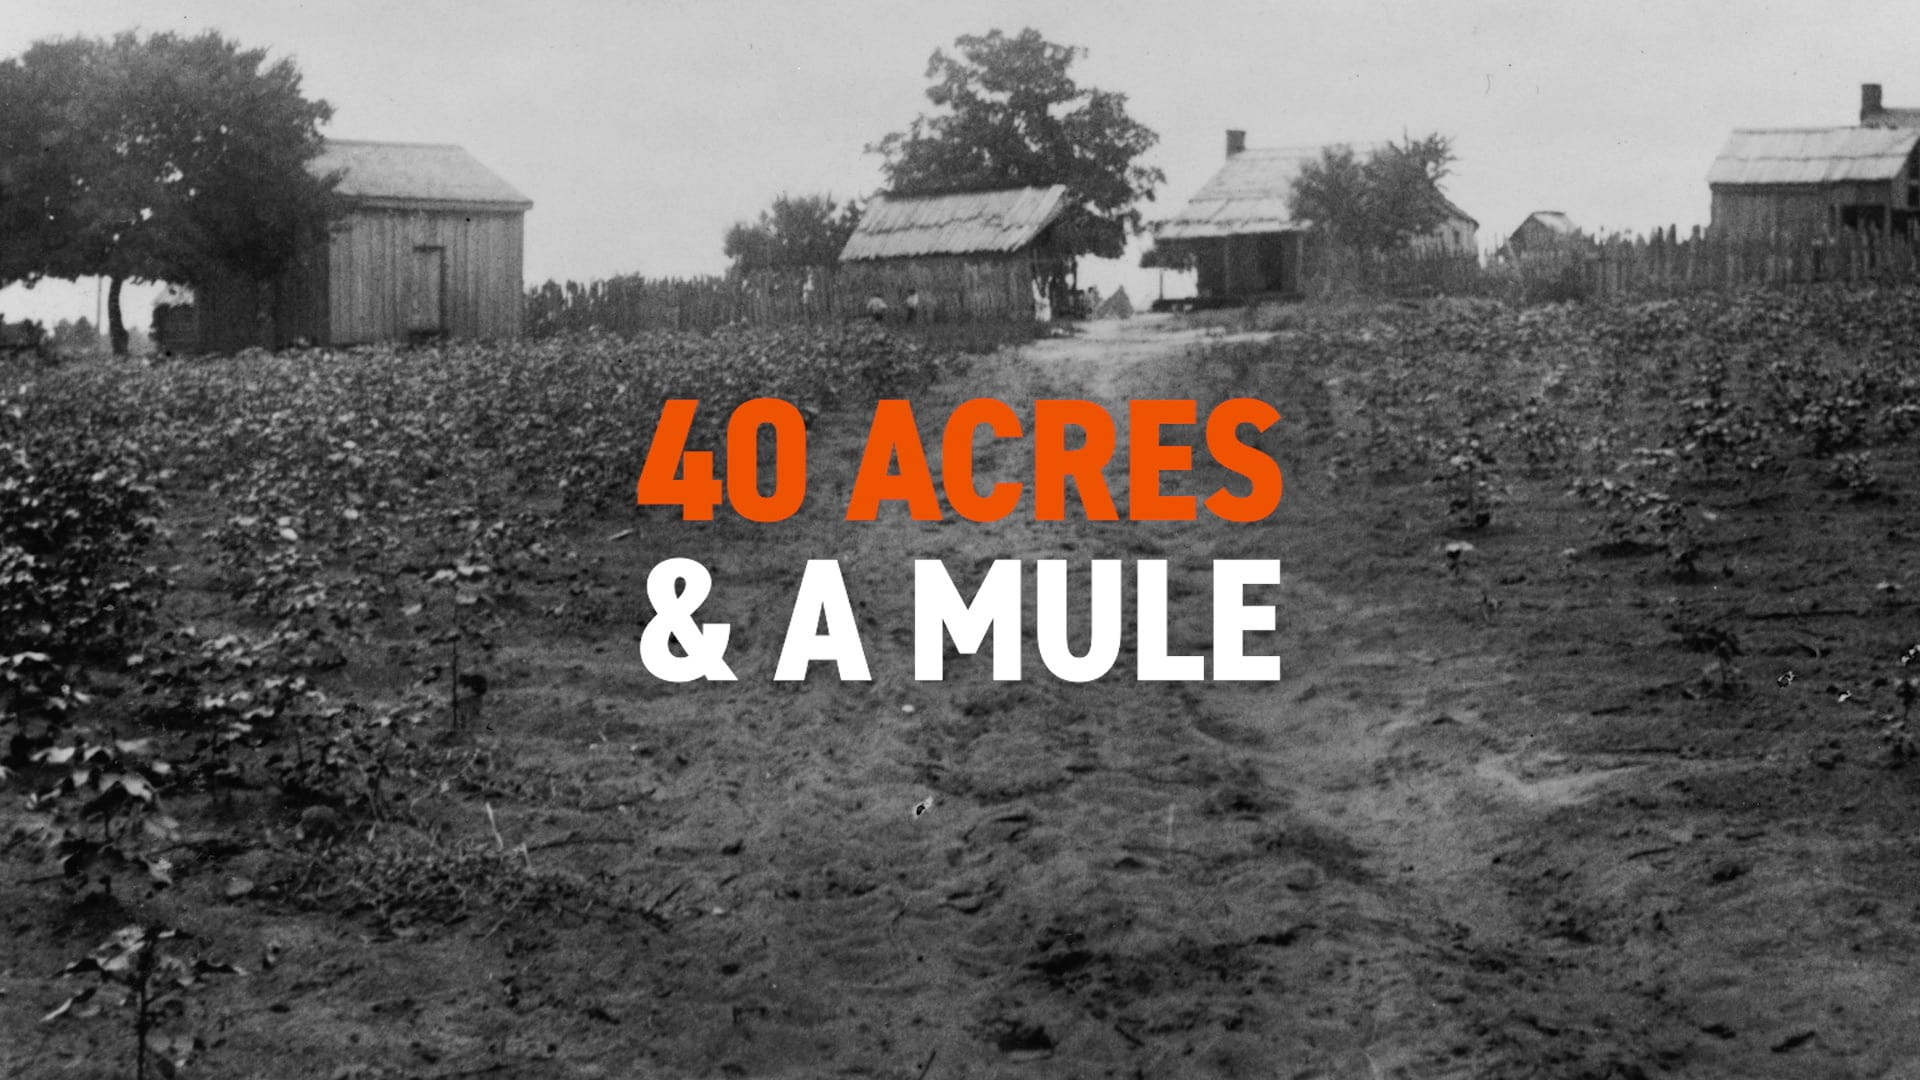 Land: Giving Rise to the Famous Phrase 40 Acres & a Mule | Black History in Two Minutes (or so)